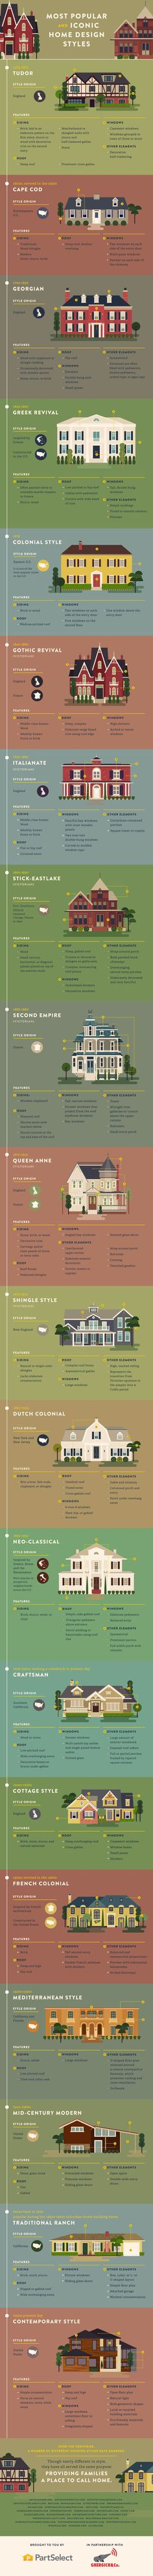 Learn the origins of the most popular and iconic home design styles, and how to identify them! #homedesign